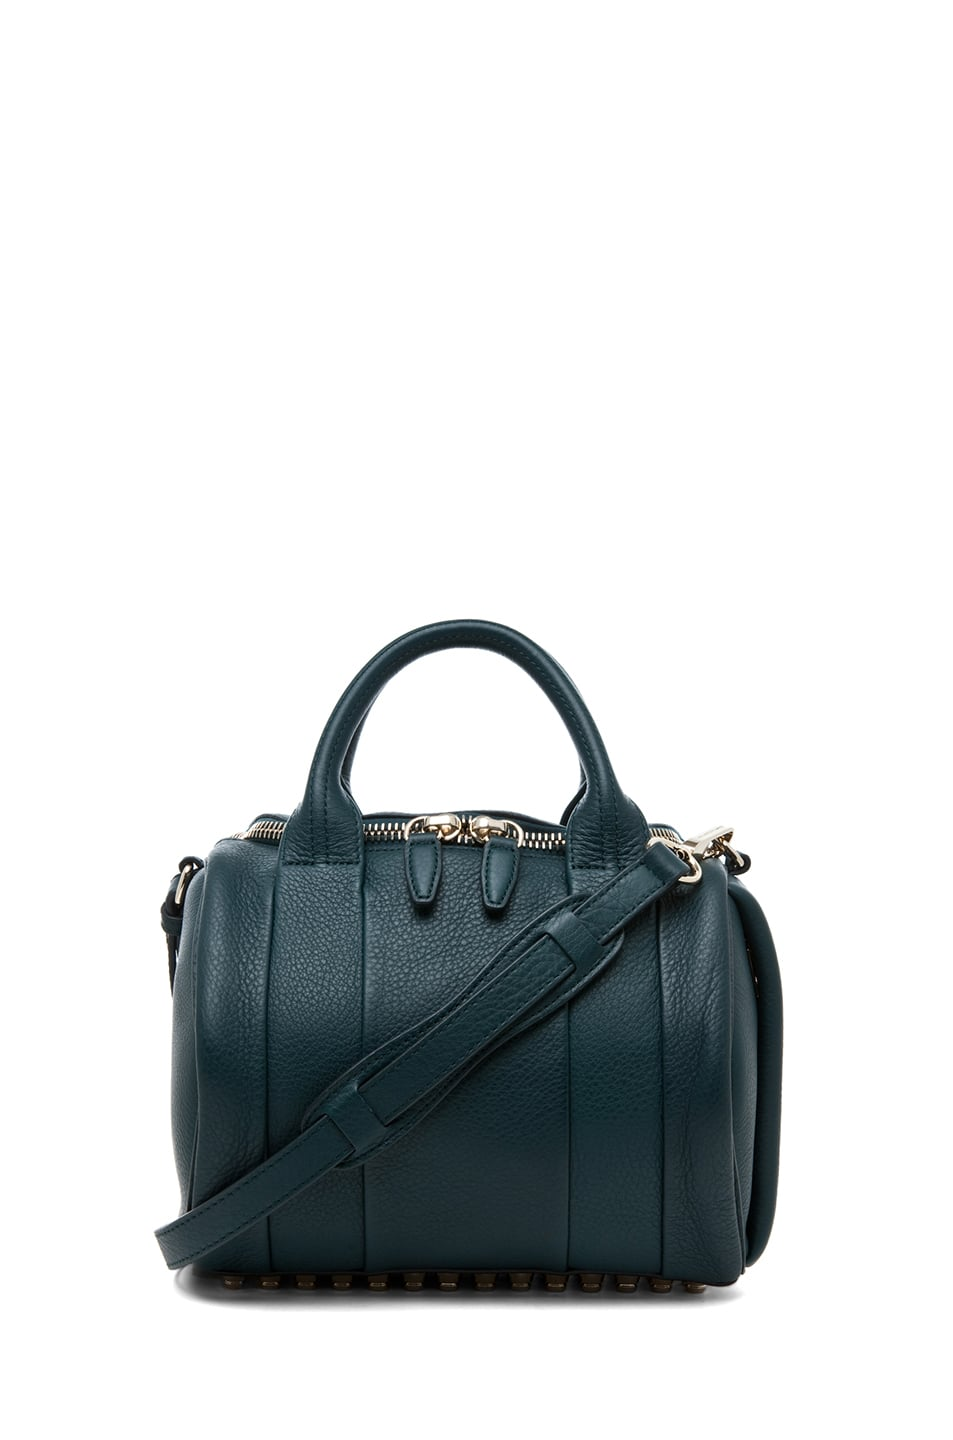 Another year, another beautiful bag to obsess over. This time around, I've got my eye on Alexander Wang's Rockie Satchel ($725). It's a smaller, more compact version of his infamous Rocco duffel, but it definitely doesn't skimp on style. The deep teal shade and brass hardware make it especially drool-worthy. — Britt Stephens, assistant editor